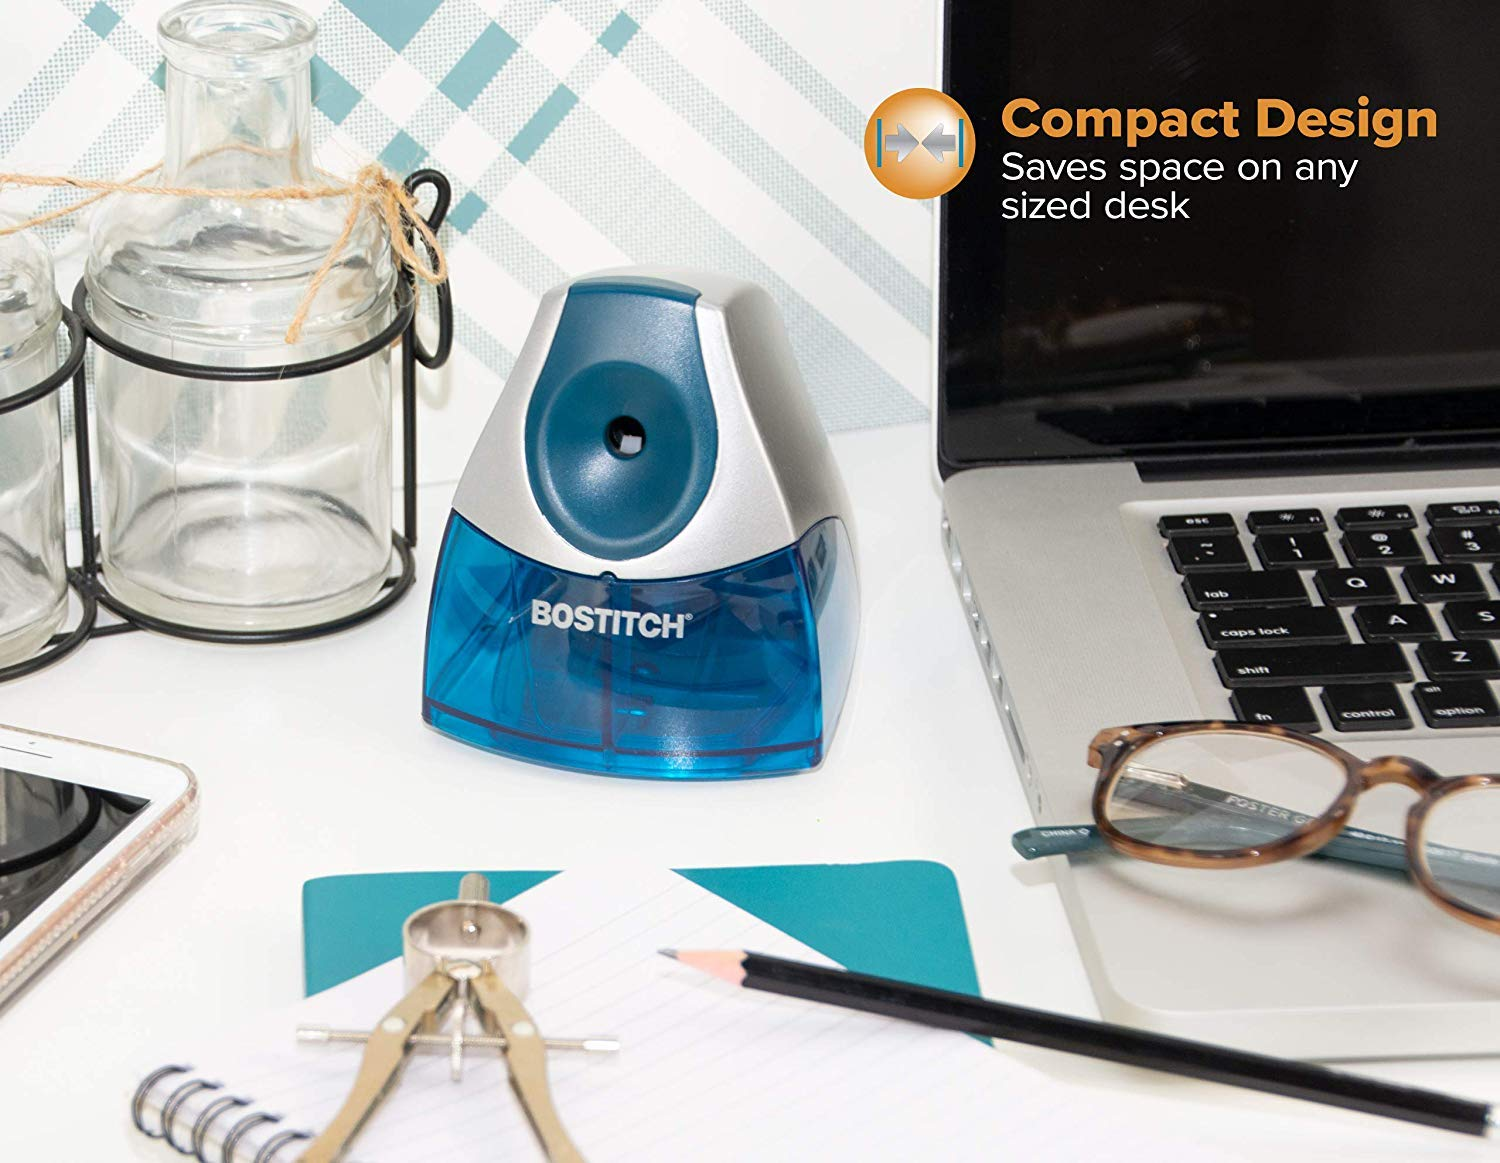 Bostitch Personal Electric Pencil Sharpener, Blue (EPS4-BLUE) - 5 Pack by Bostitch Office (Image #5)